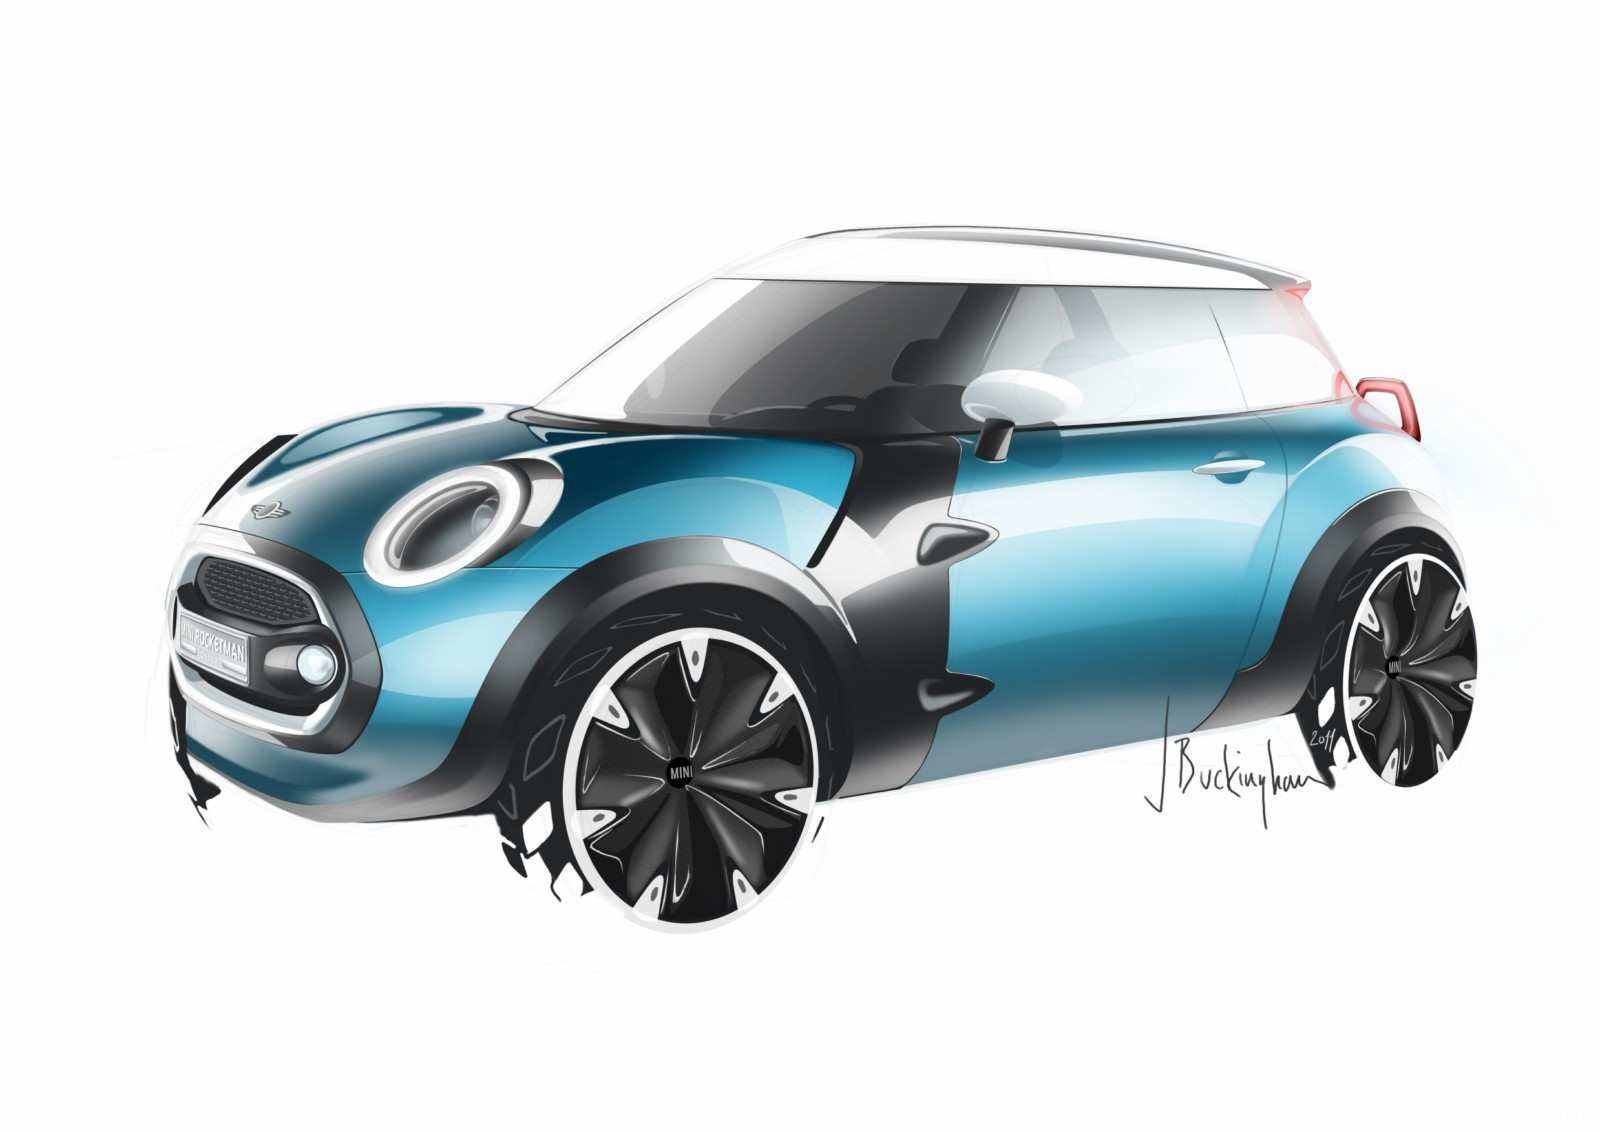 26 Concept of Mini Cabrio 2020 Price and Review by Mini Cabrio 2020